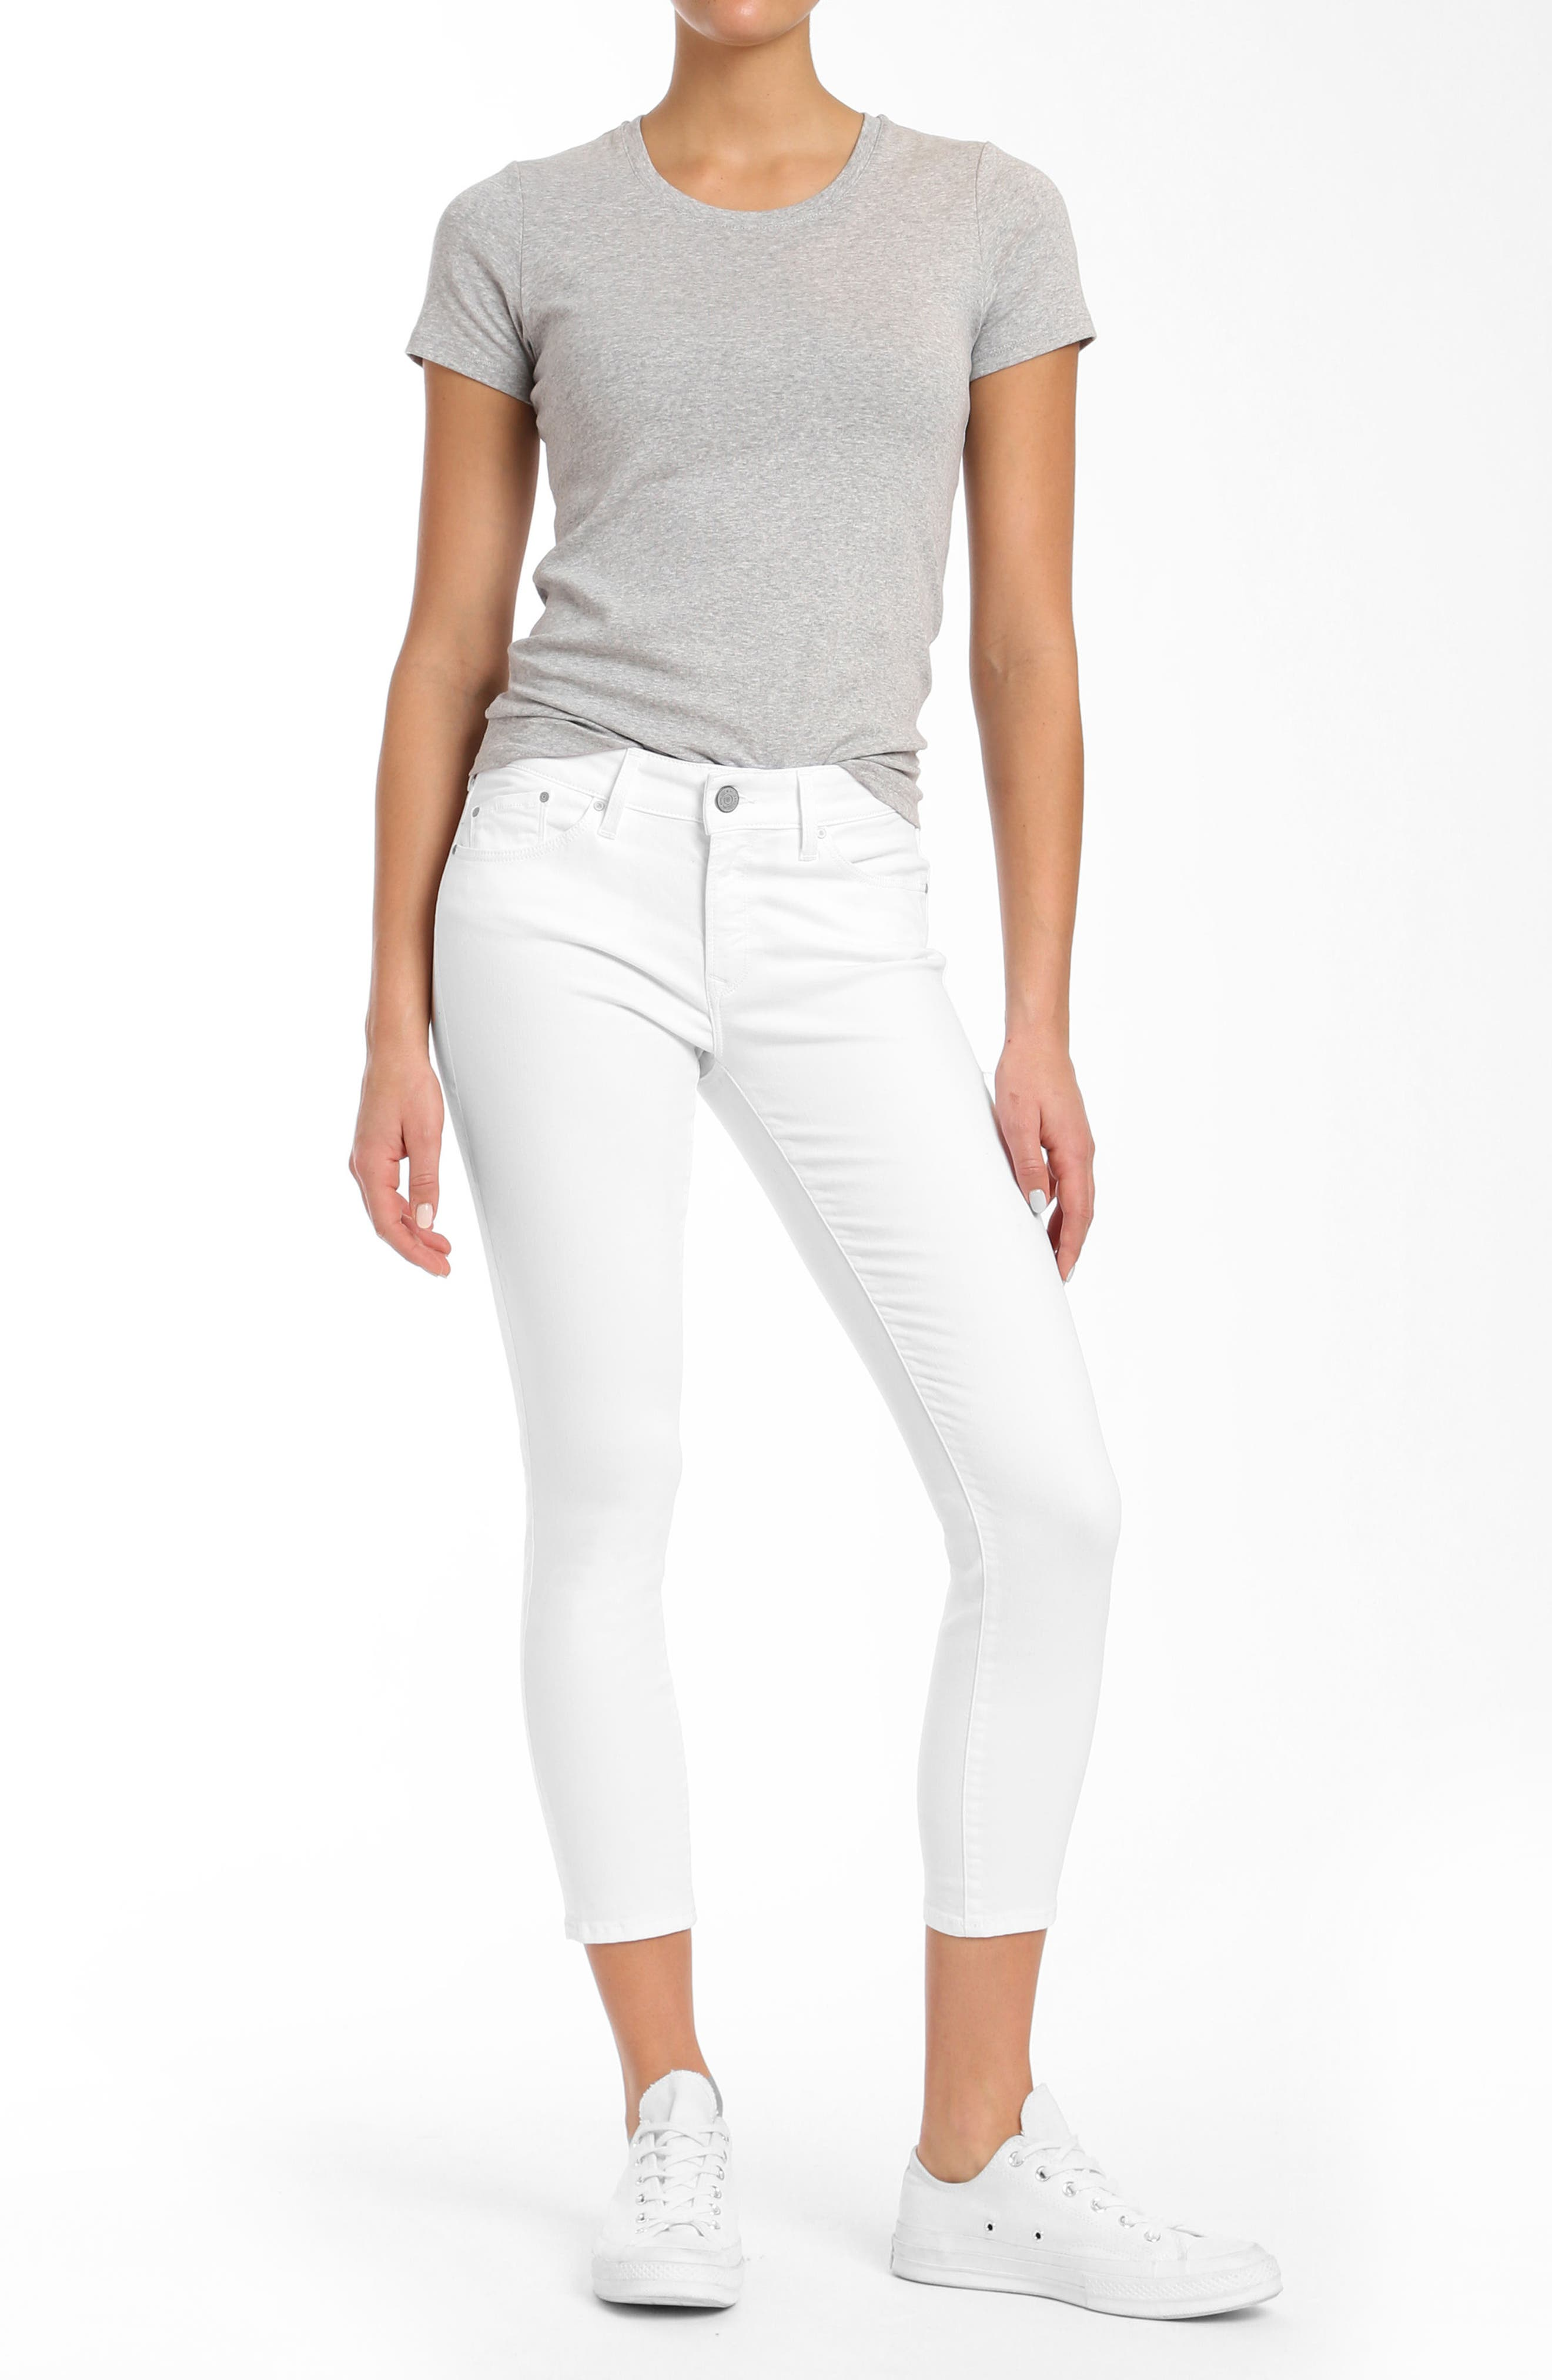 Adriana Ankle Jeans,                             Alternate thumbnail 5, color,                             White Tribeca